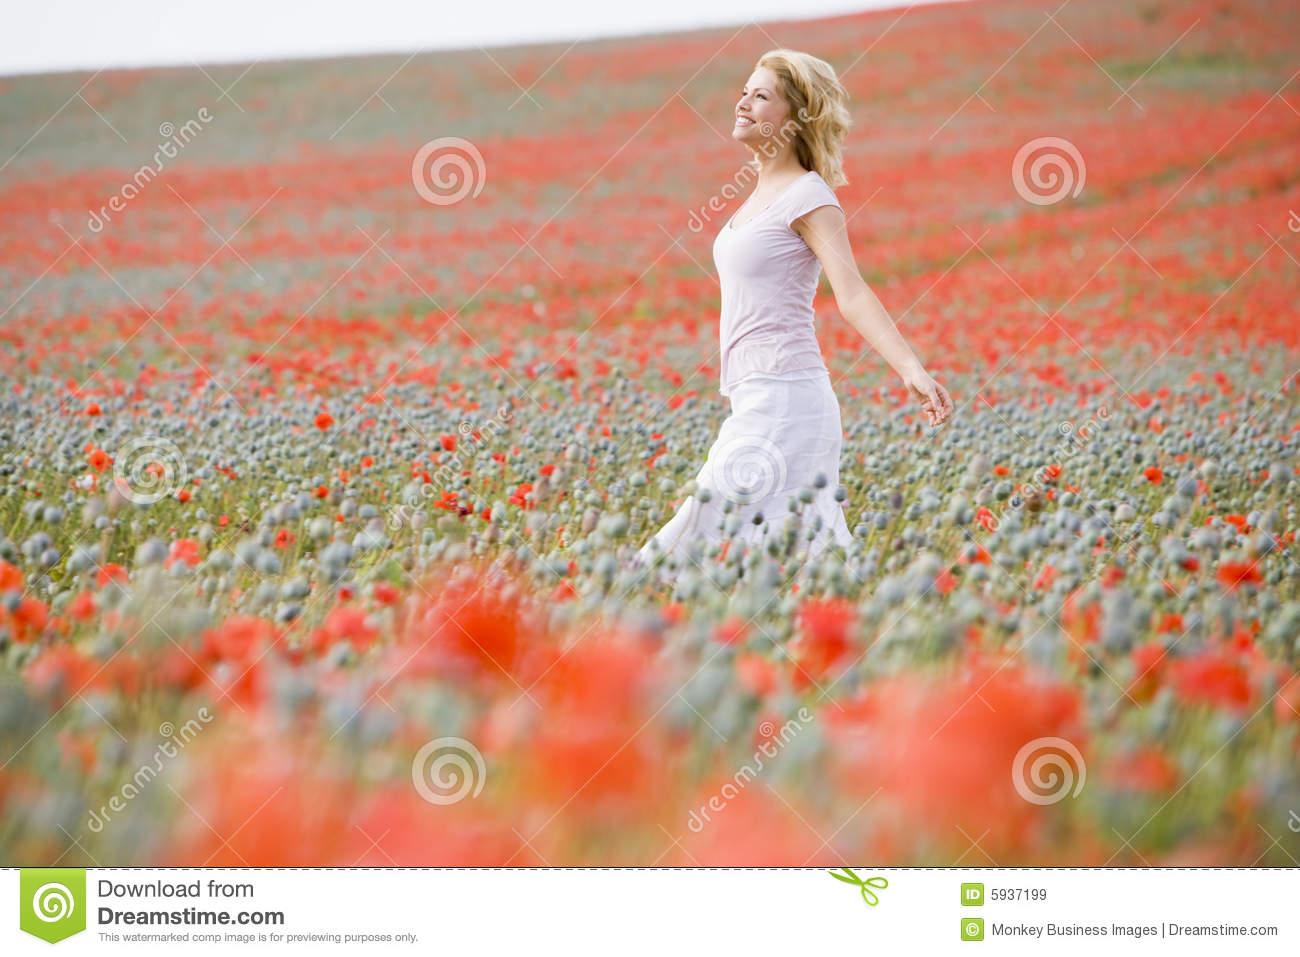 Woman walking in poppy field